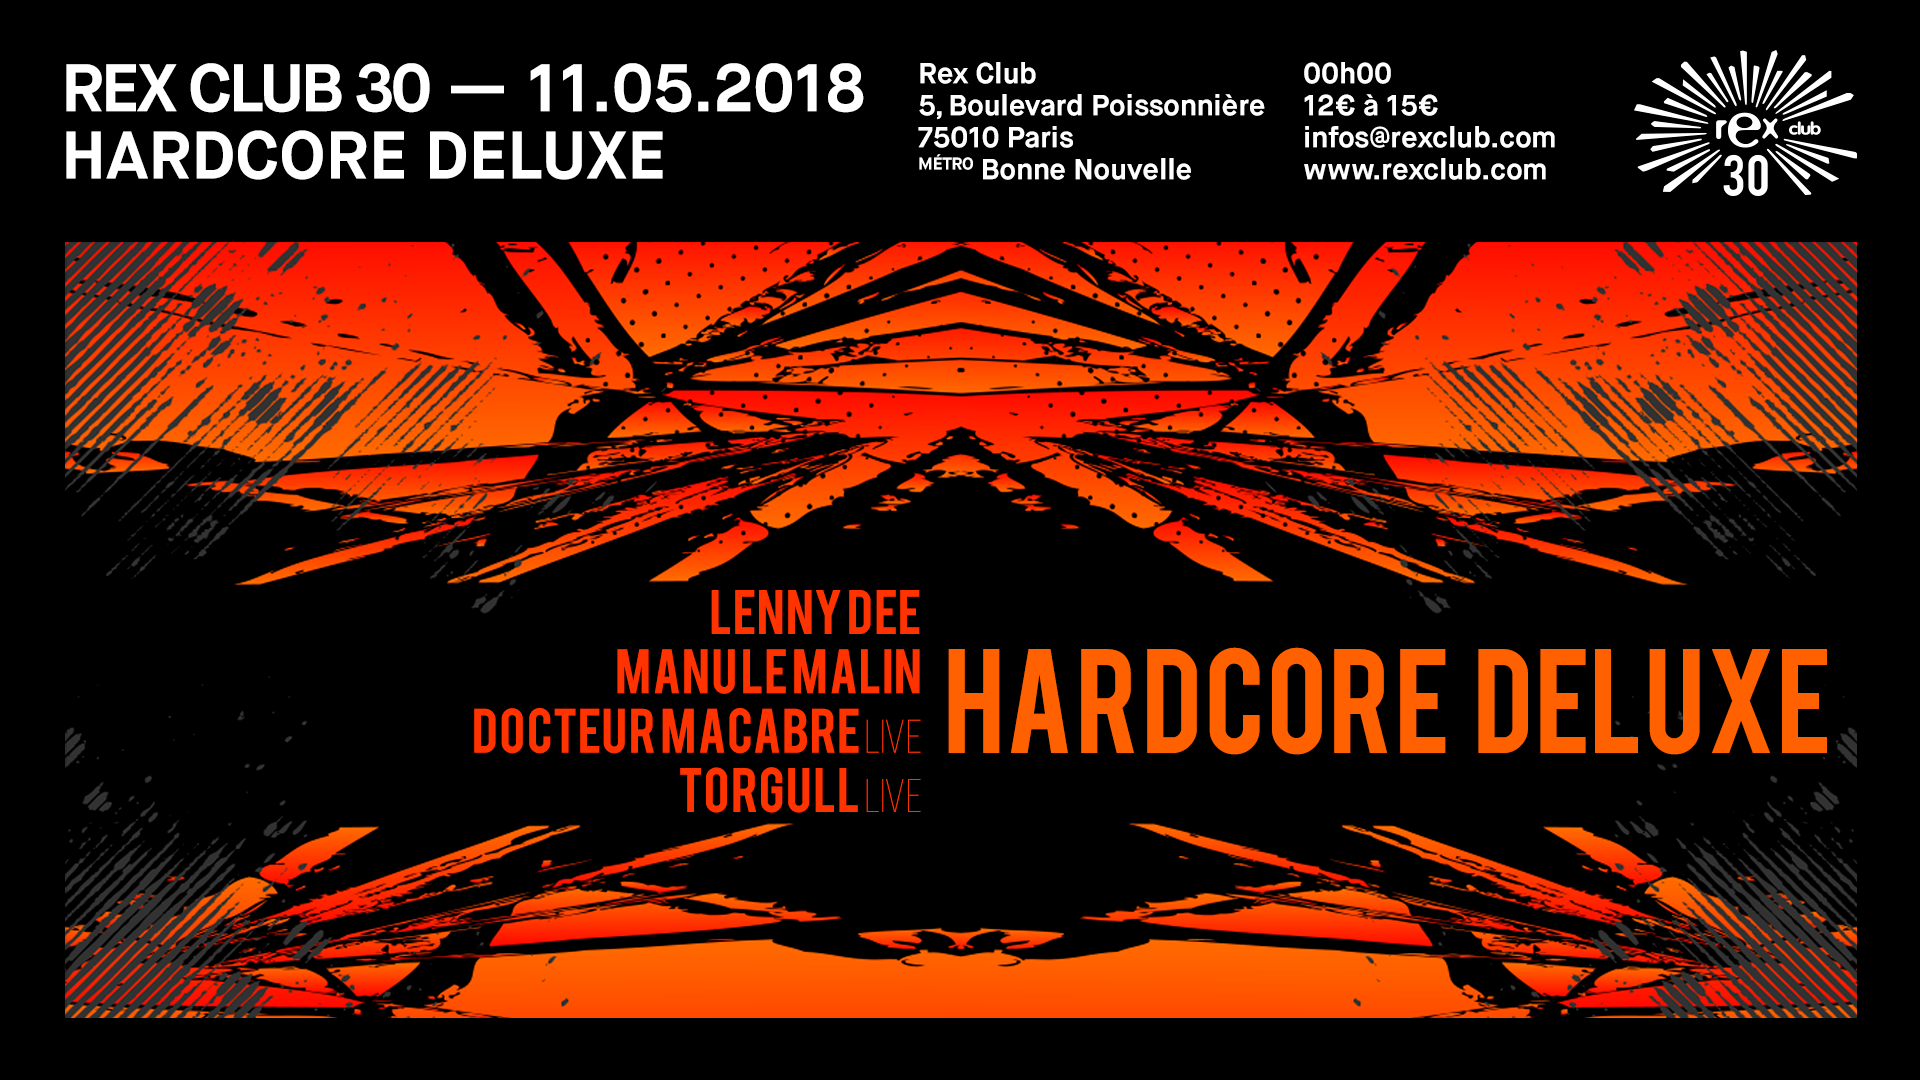 20180511_rex_club_30_hardcore_deluxe_facebook_event_banner_1920x1080